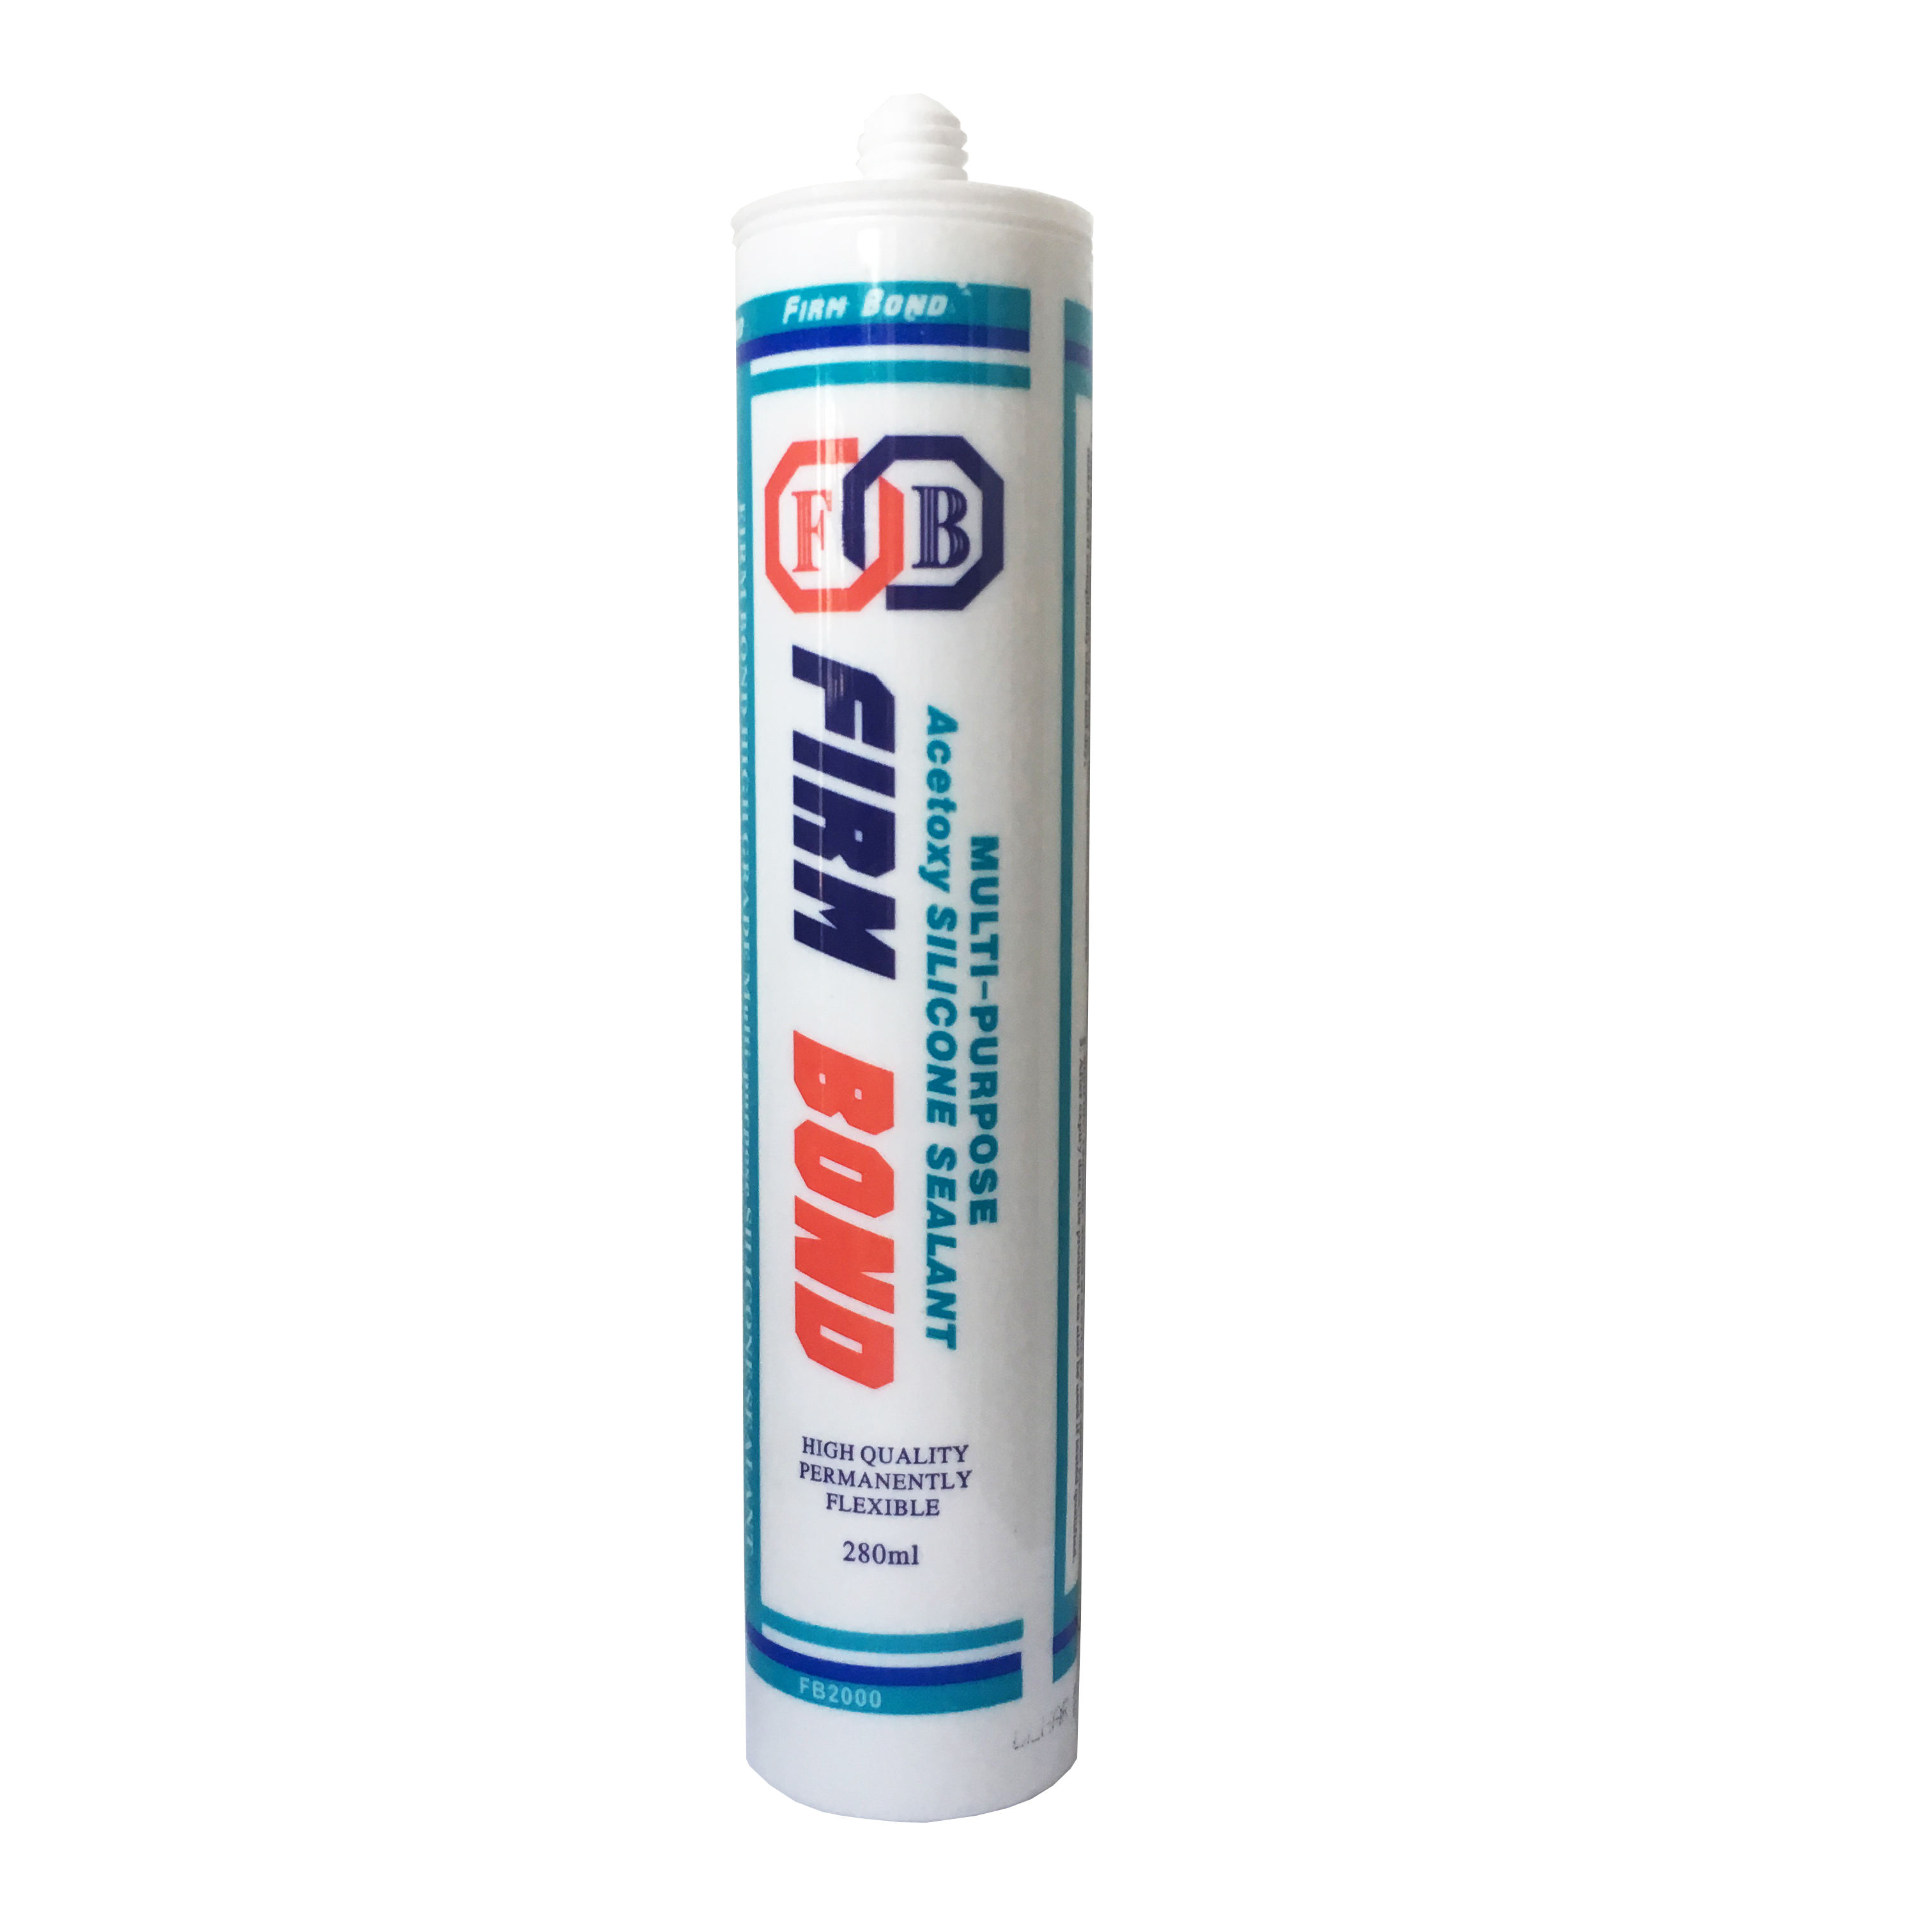 Ceramics Sealing Acrylic Sealant Best Selling Silicone Sealant